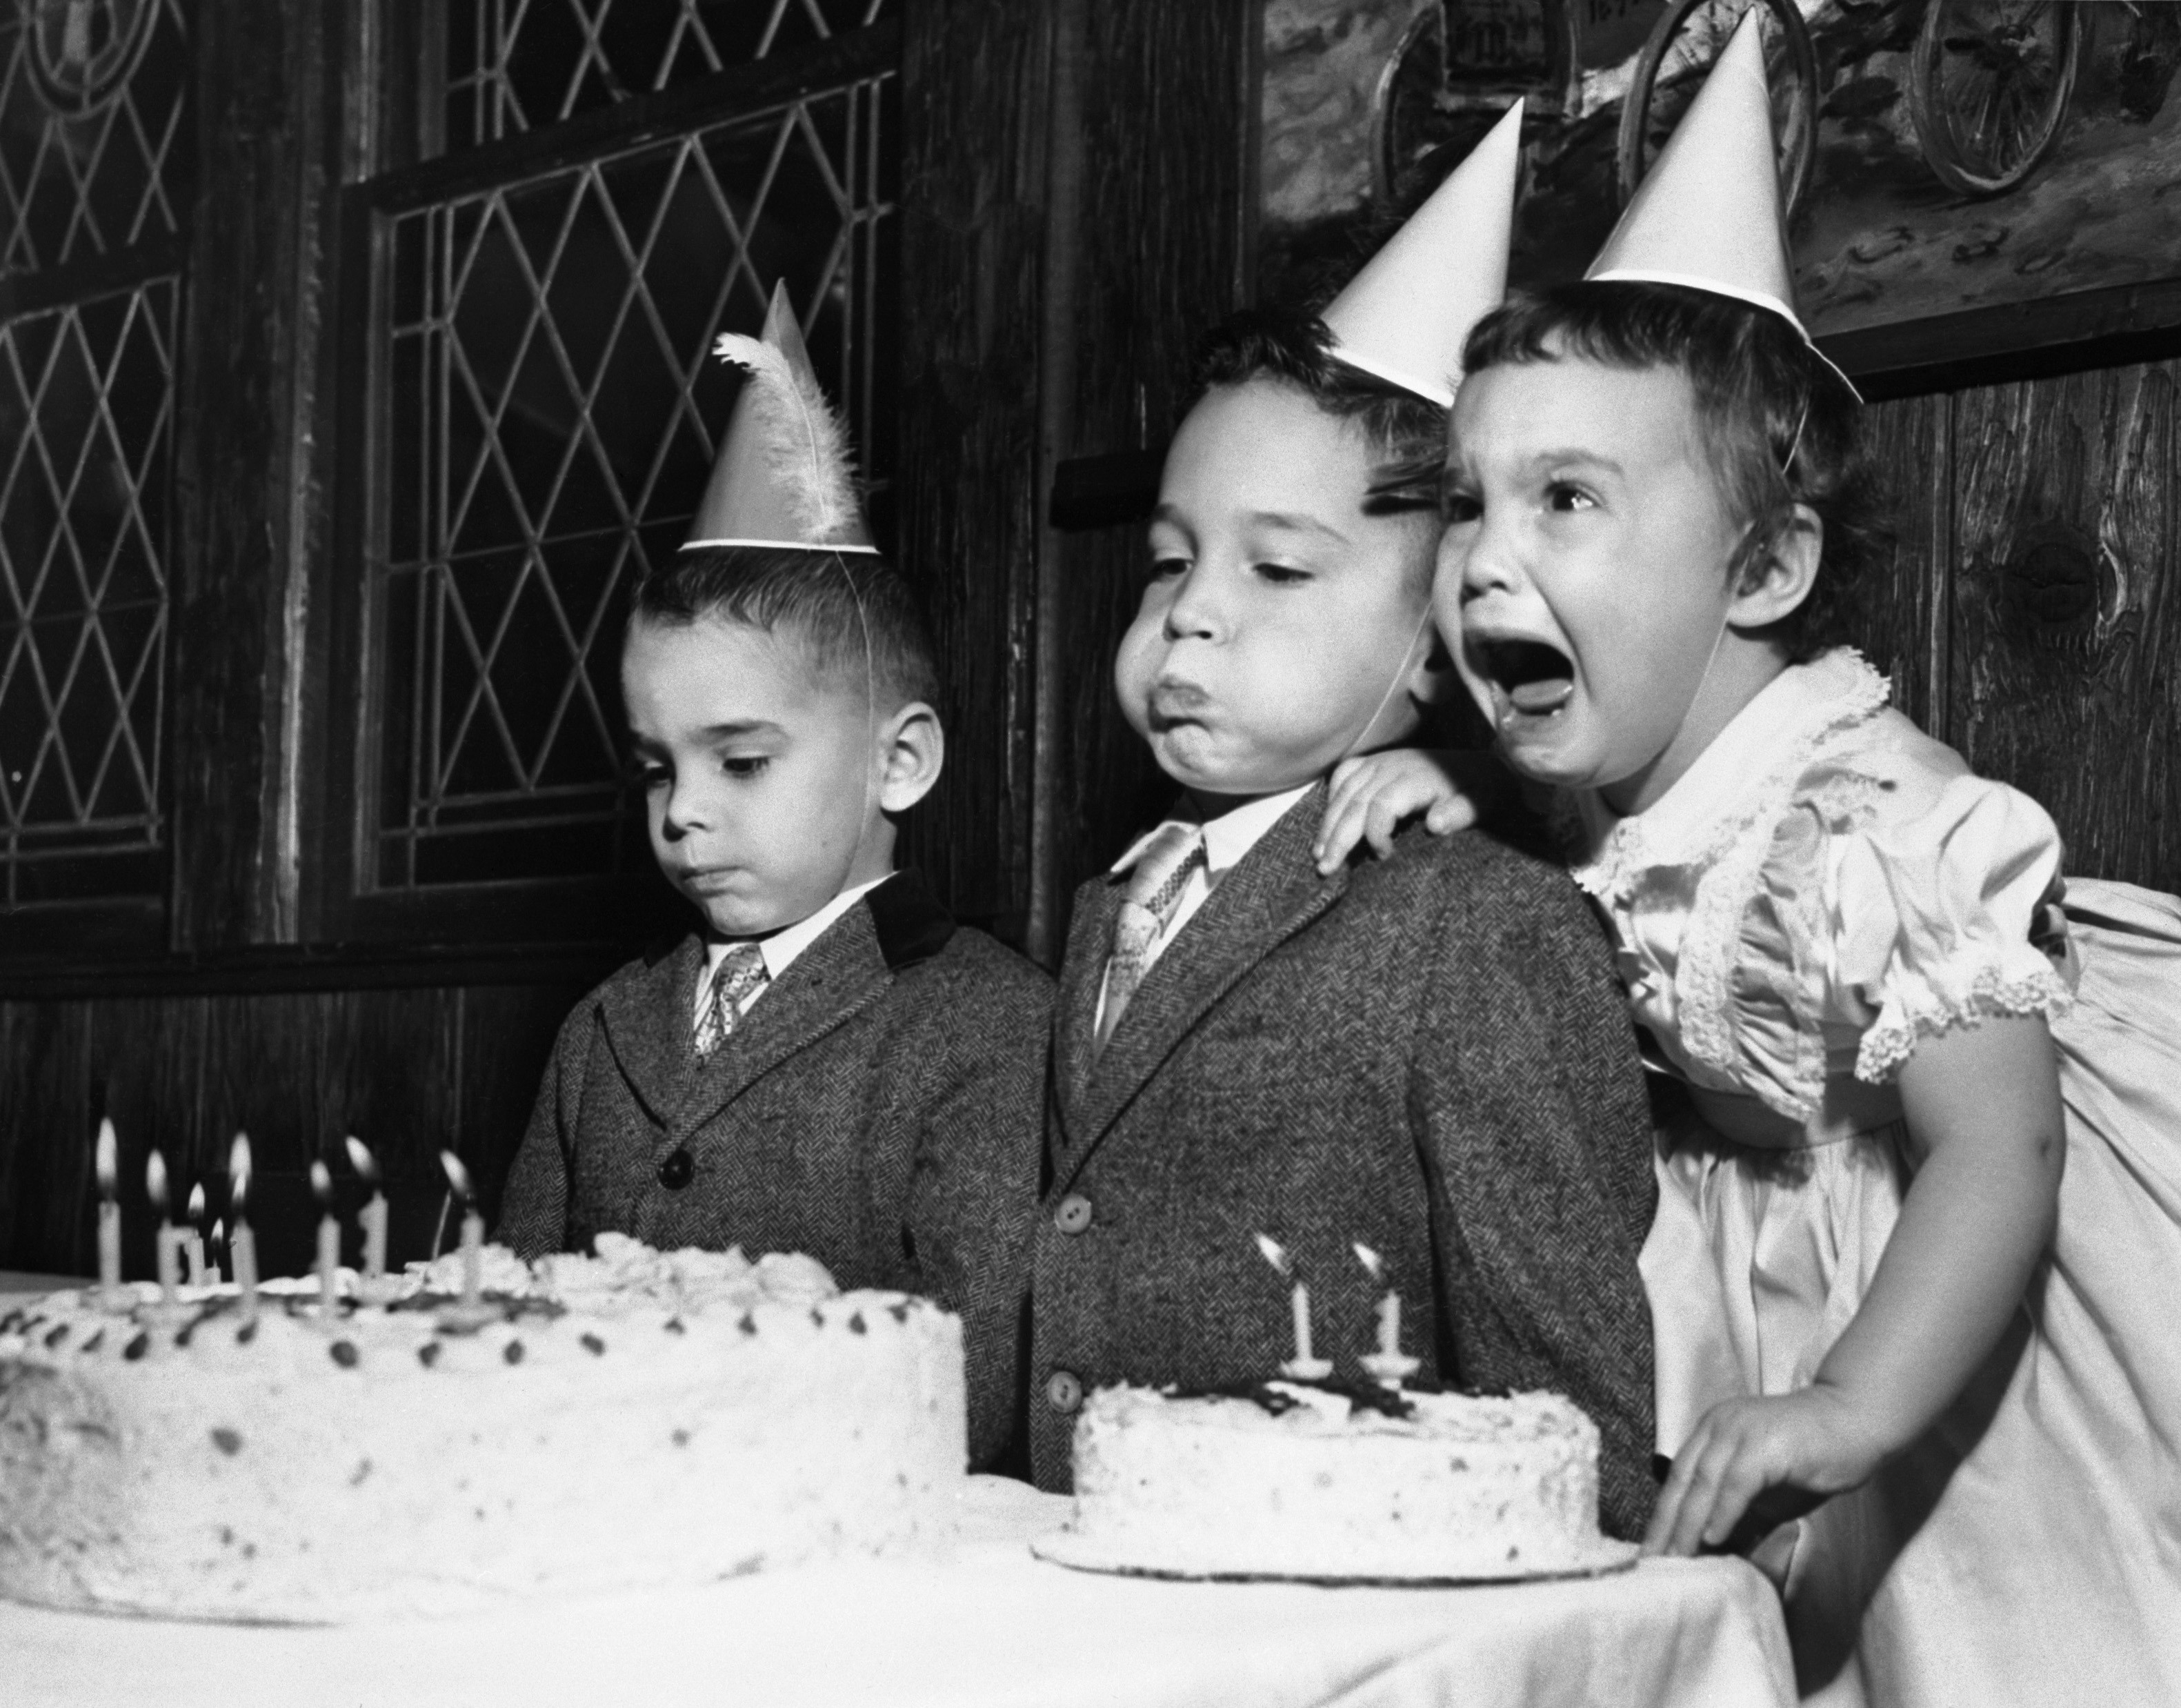 party, grayscale, monochrome, cakes, children - desktop wallpaper